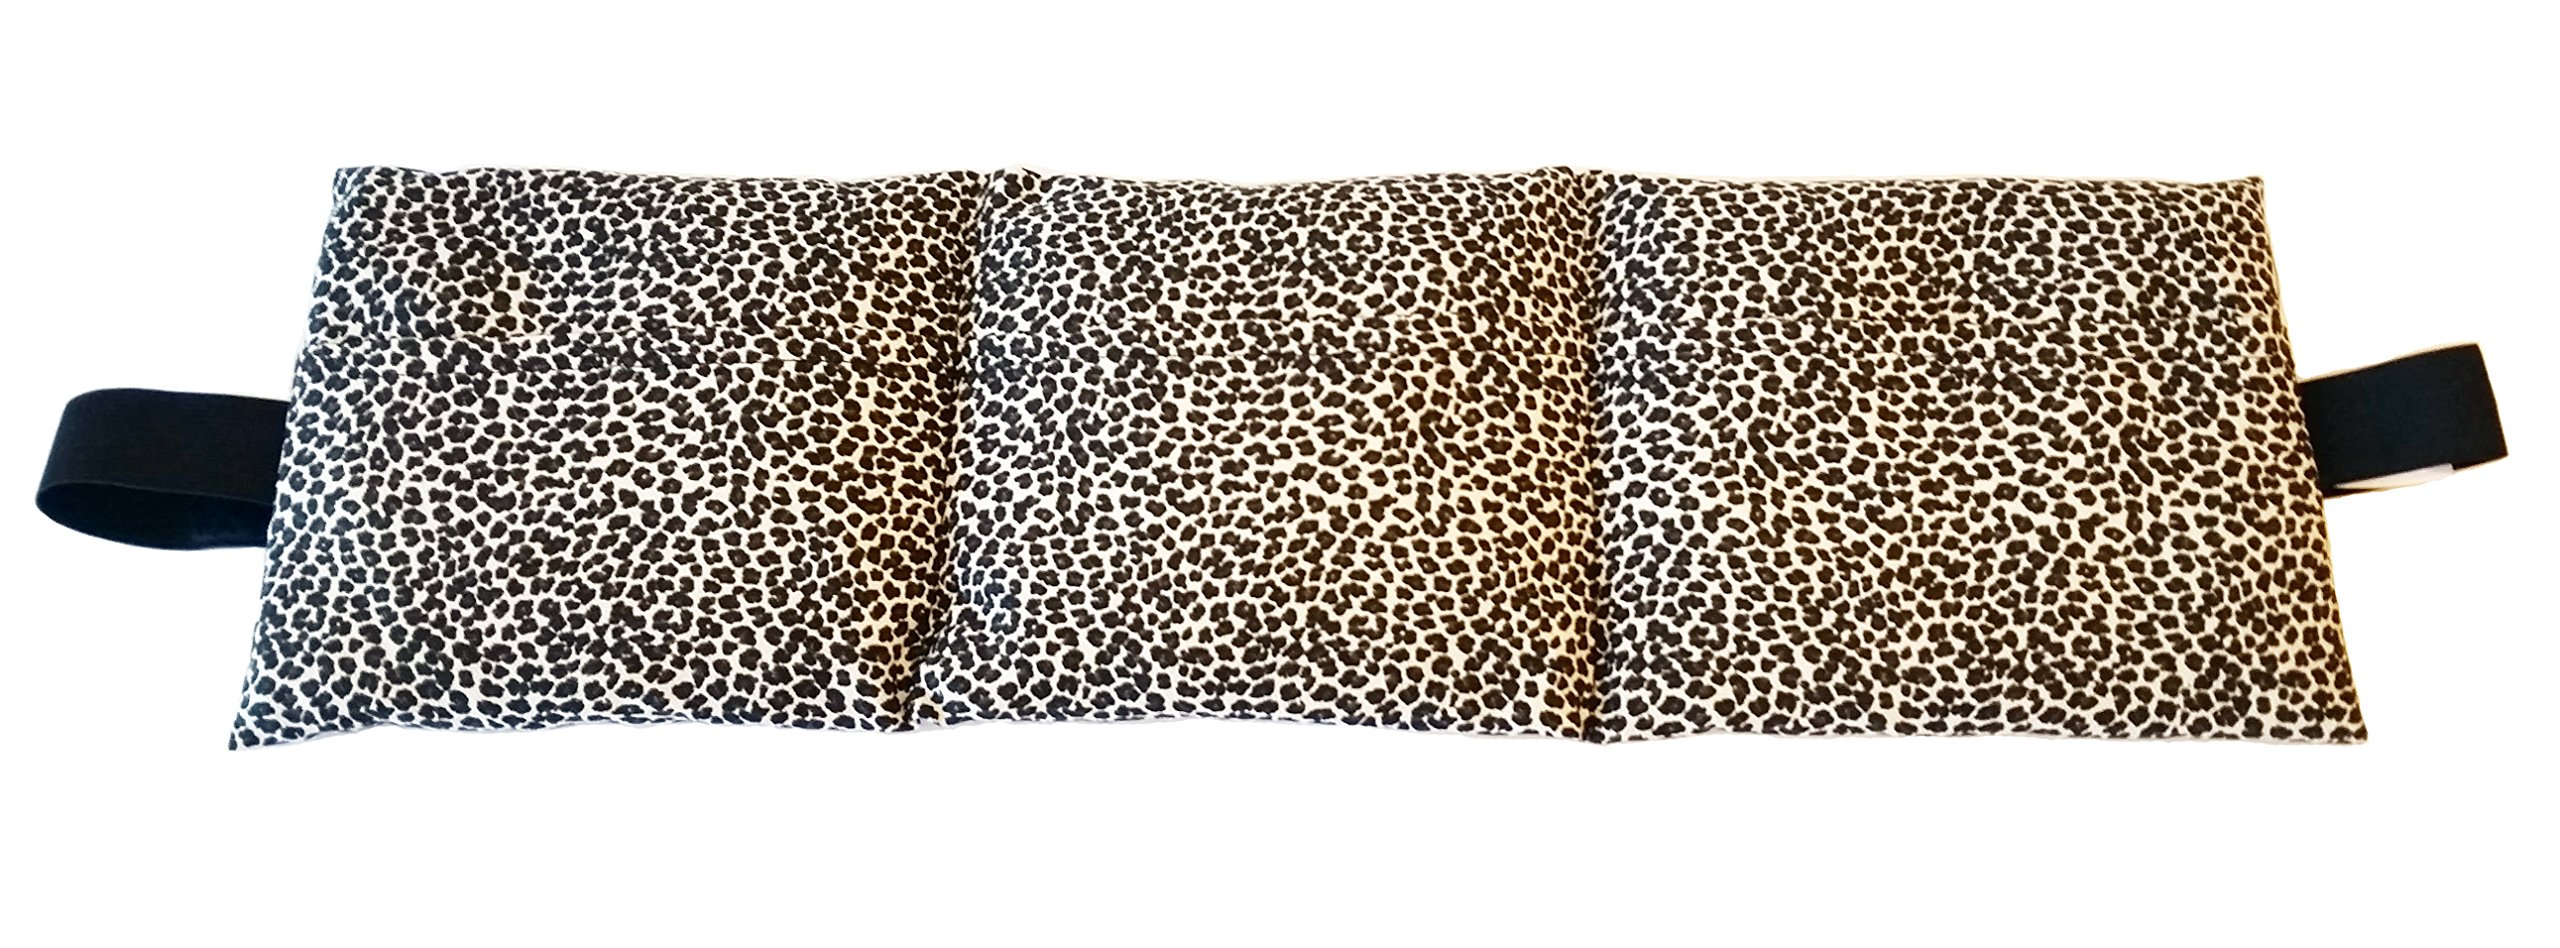 Heating Pad. Natural Heat Therapy For Lower Back, Neck, Shoulders, Cramps. Pain and Stress relief Heated Wrap. (Dots)